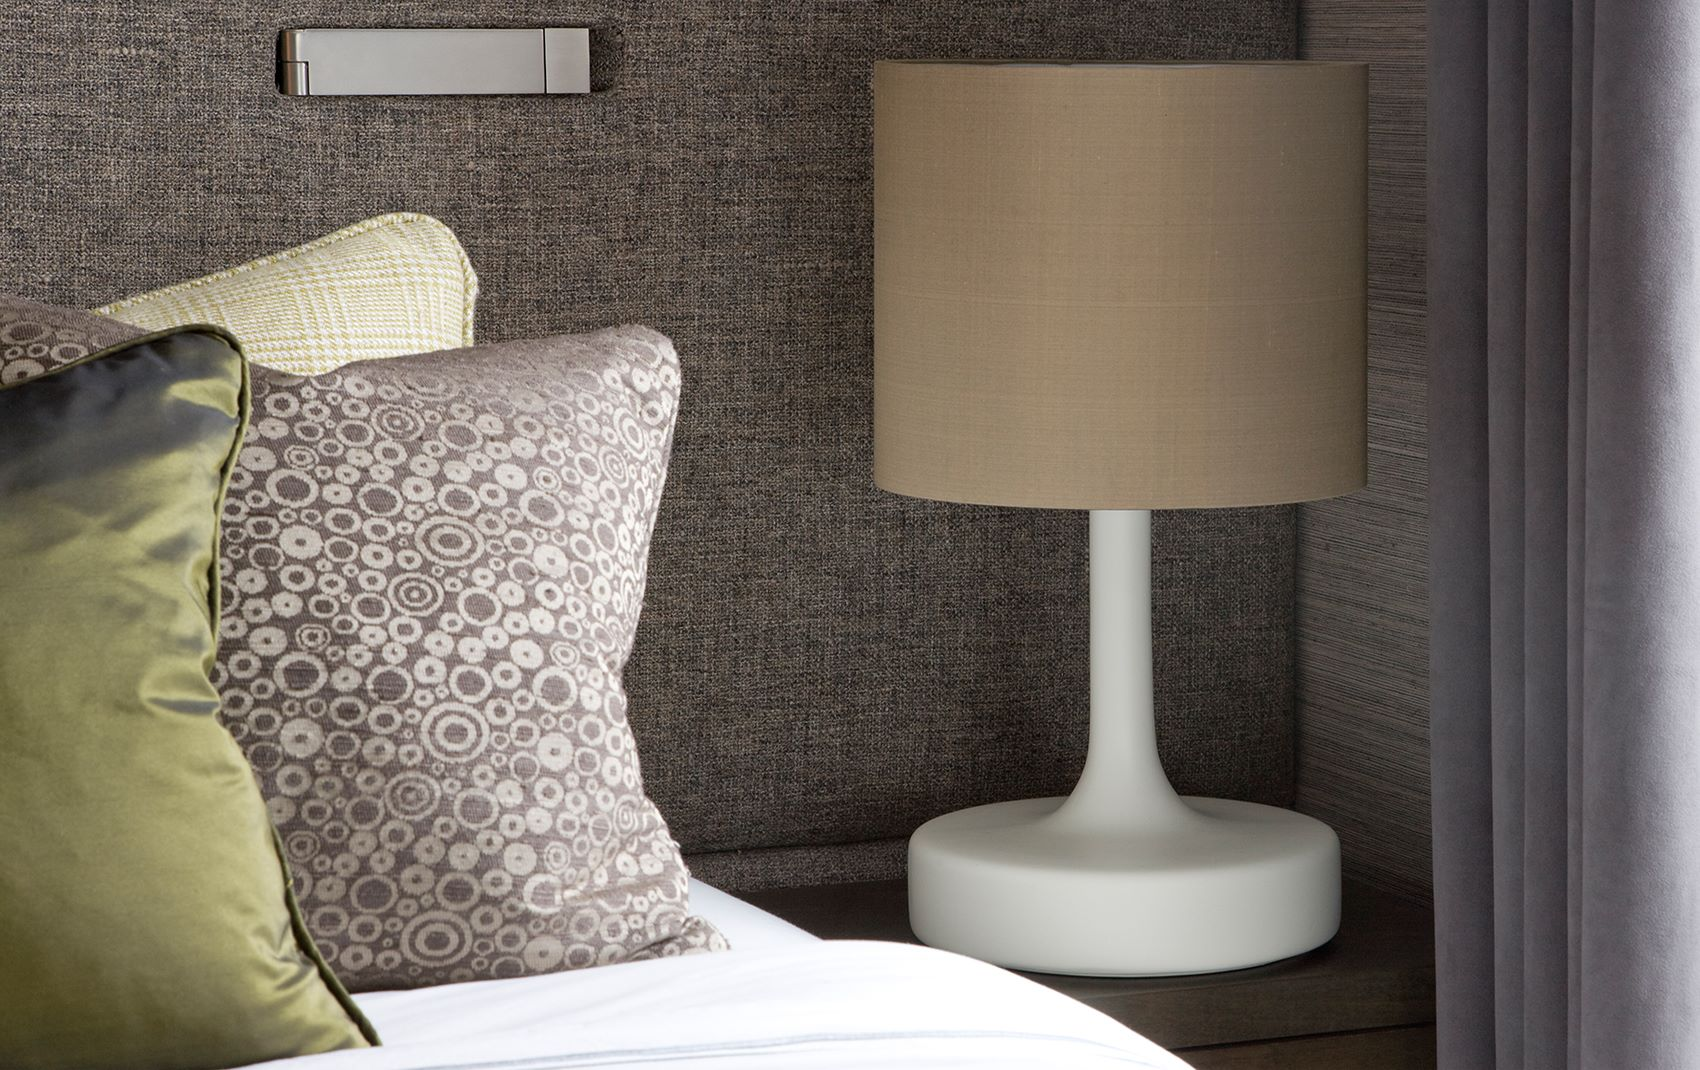 west london penthouse - side table lamp